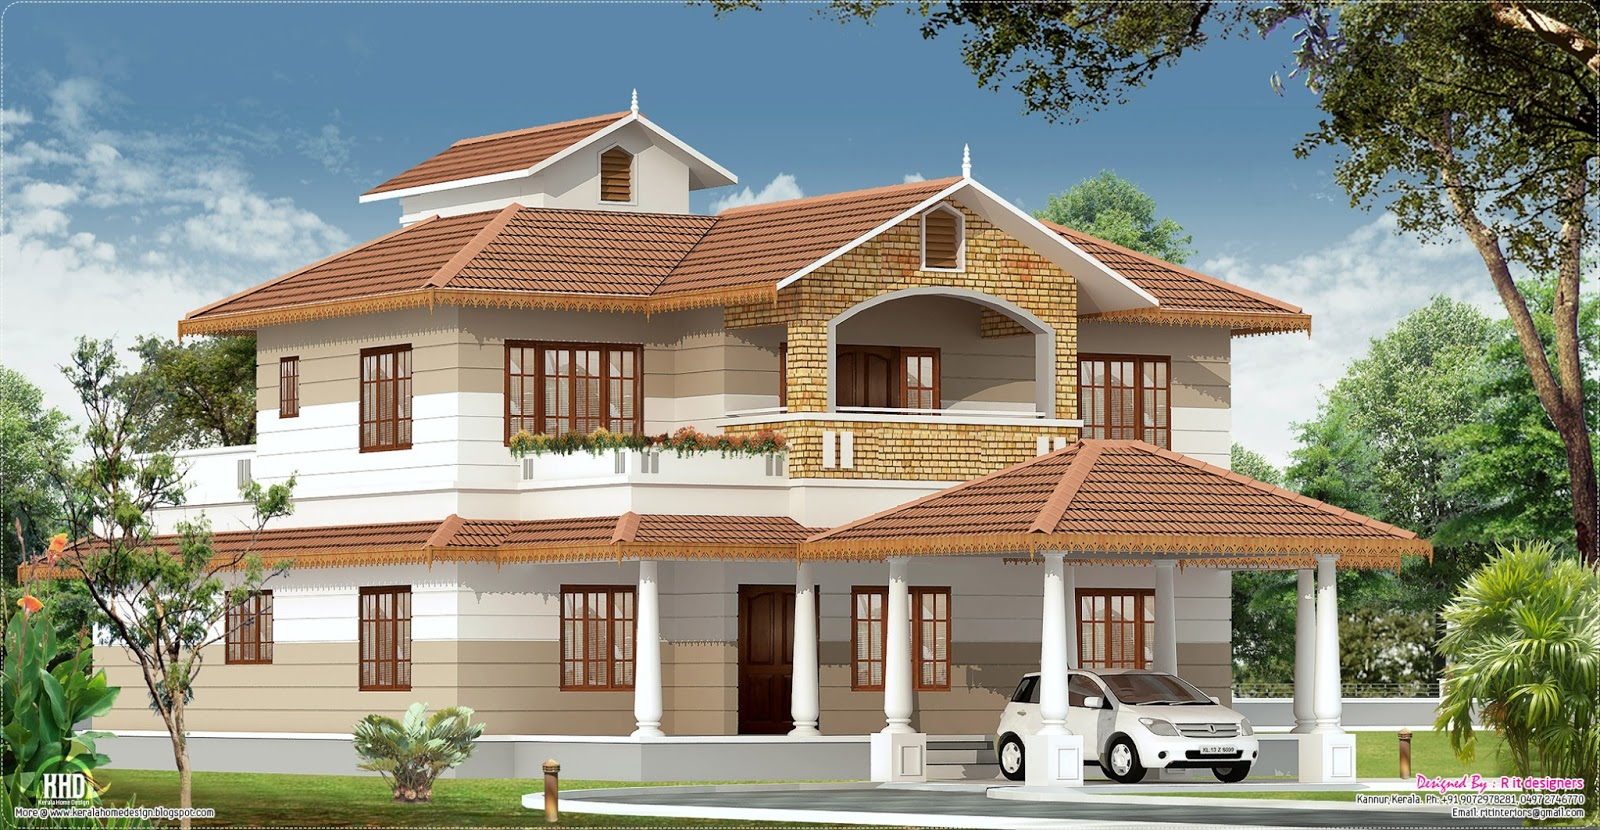 2700 kerala home with interior designs kerala for Kerala home plans